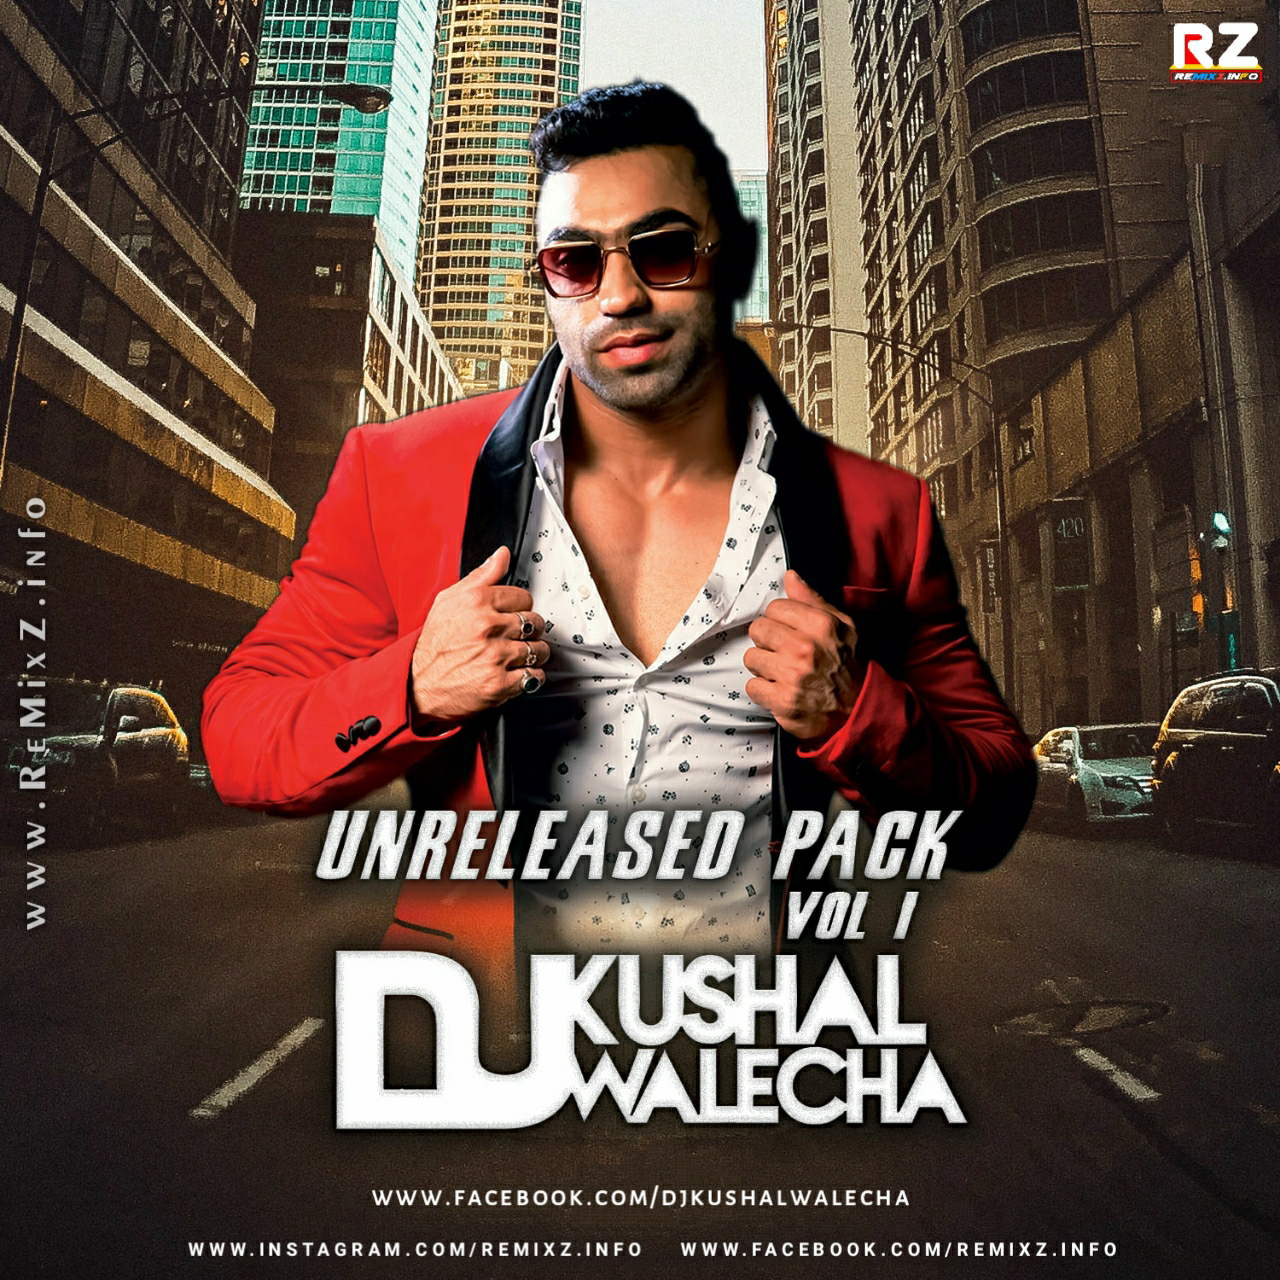 unreleased-pack-vol1-dj-kushal-walecha.jpg